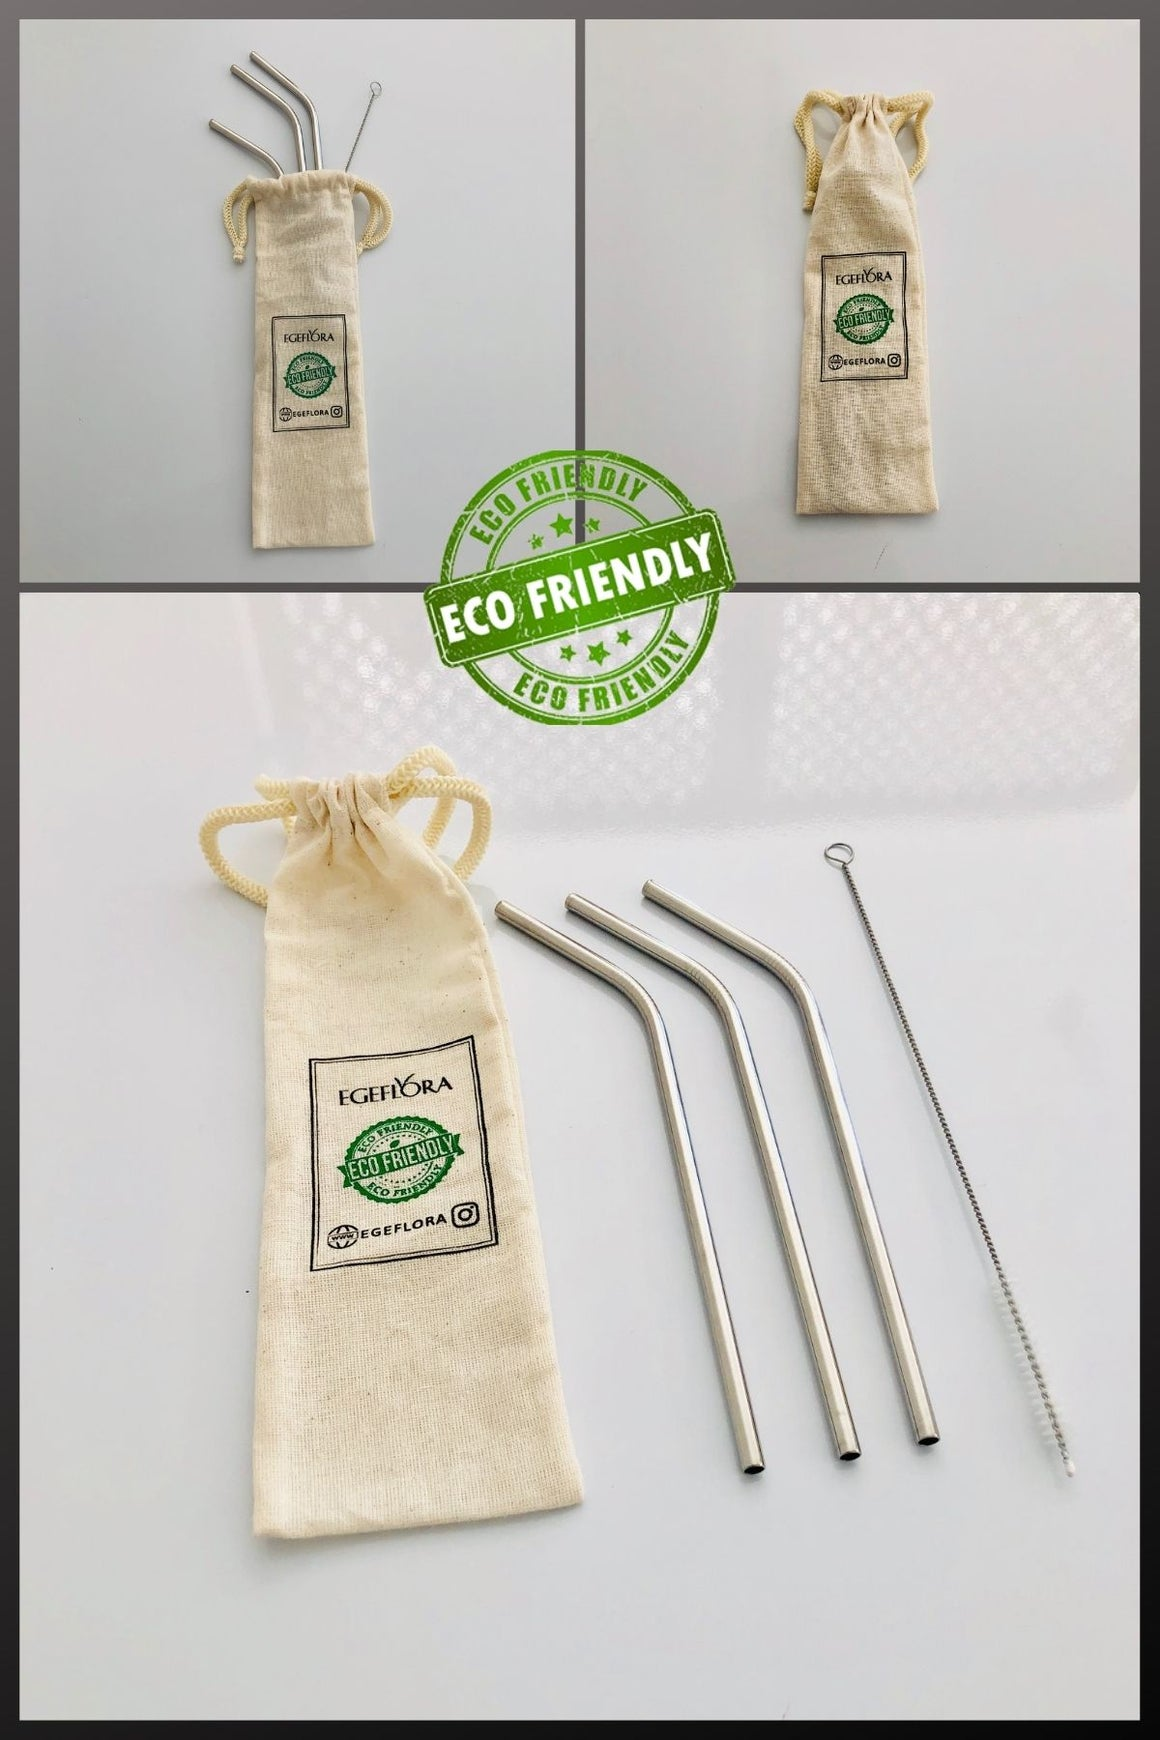 Stainless Steel Drinking Straws and Brush Set with Organic Cotton Pouch